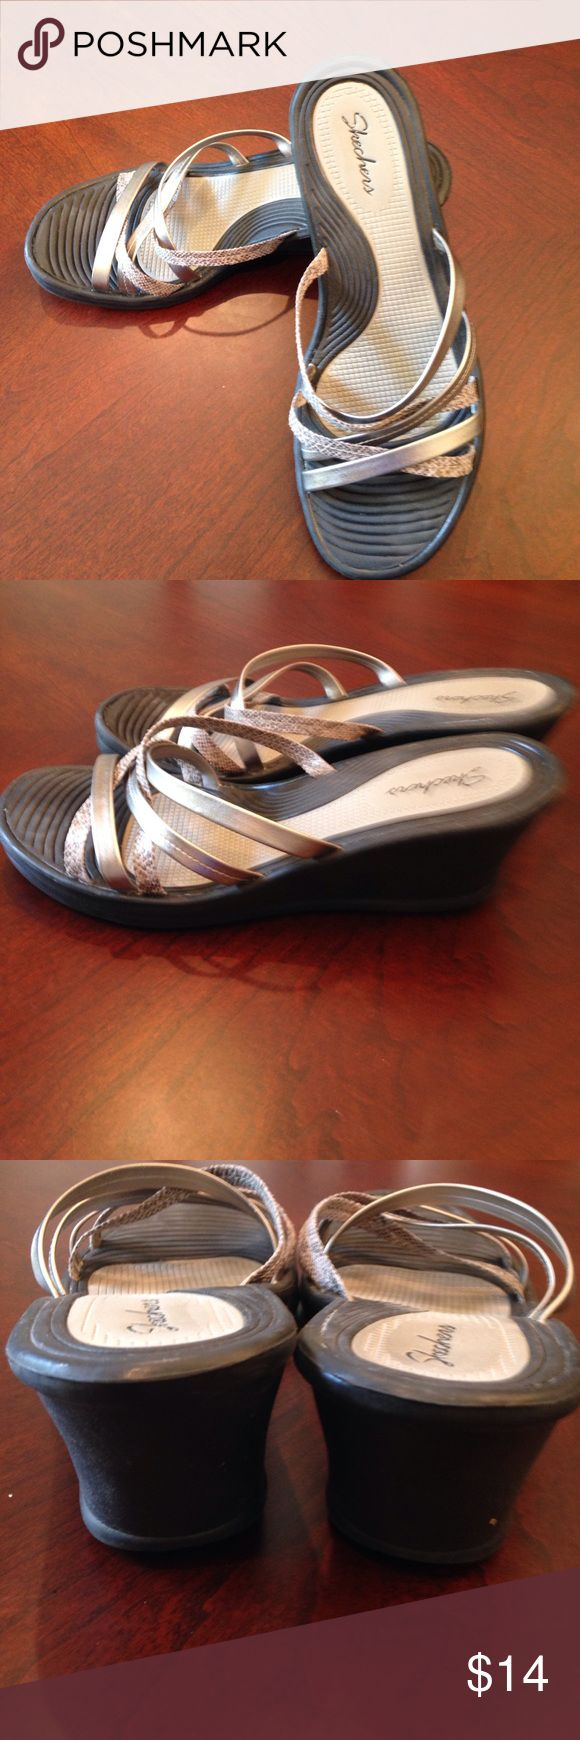 """Skechers strappy wedge sandals Super cute silver snakeskin and black wedge cushion heeled strappy sandals. Wear with shorts, jeans or dress and you're ready to go. 21/2"""" heels. Size 10. Skechers Shoes Wedges"""